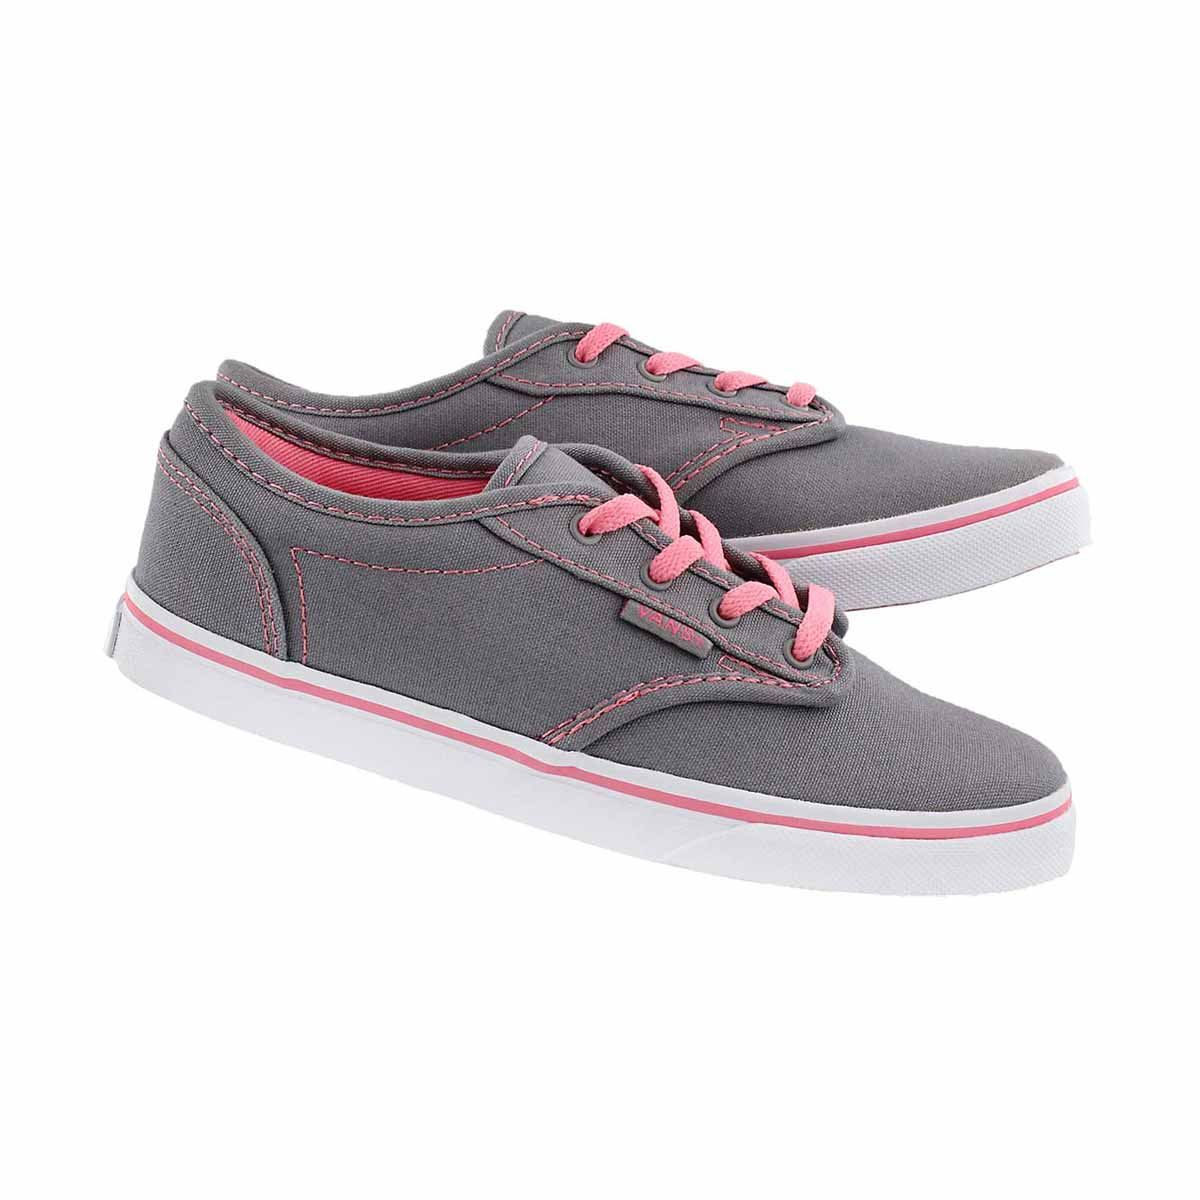 Grls Atwood Low gry/pnk lace up sneaker